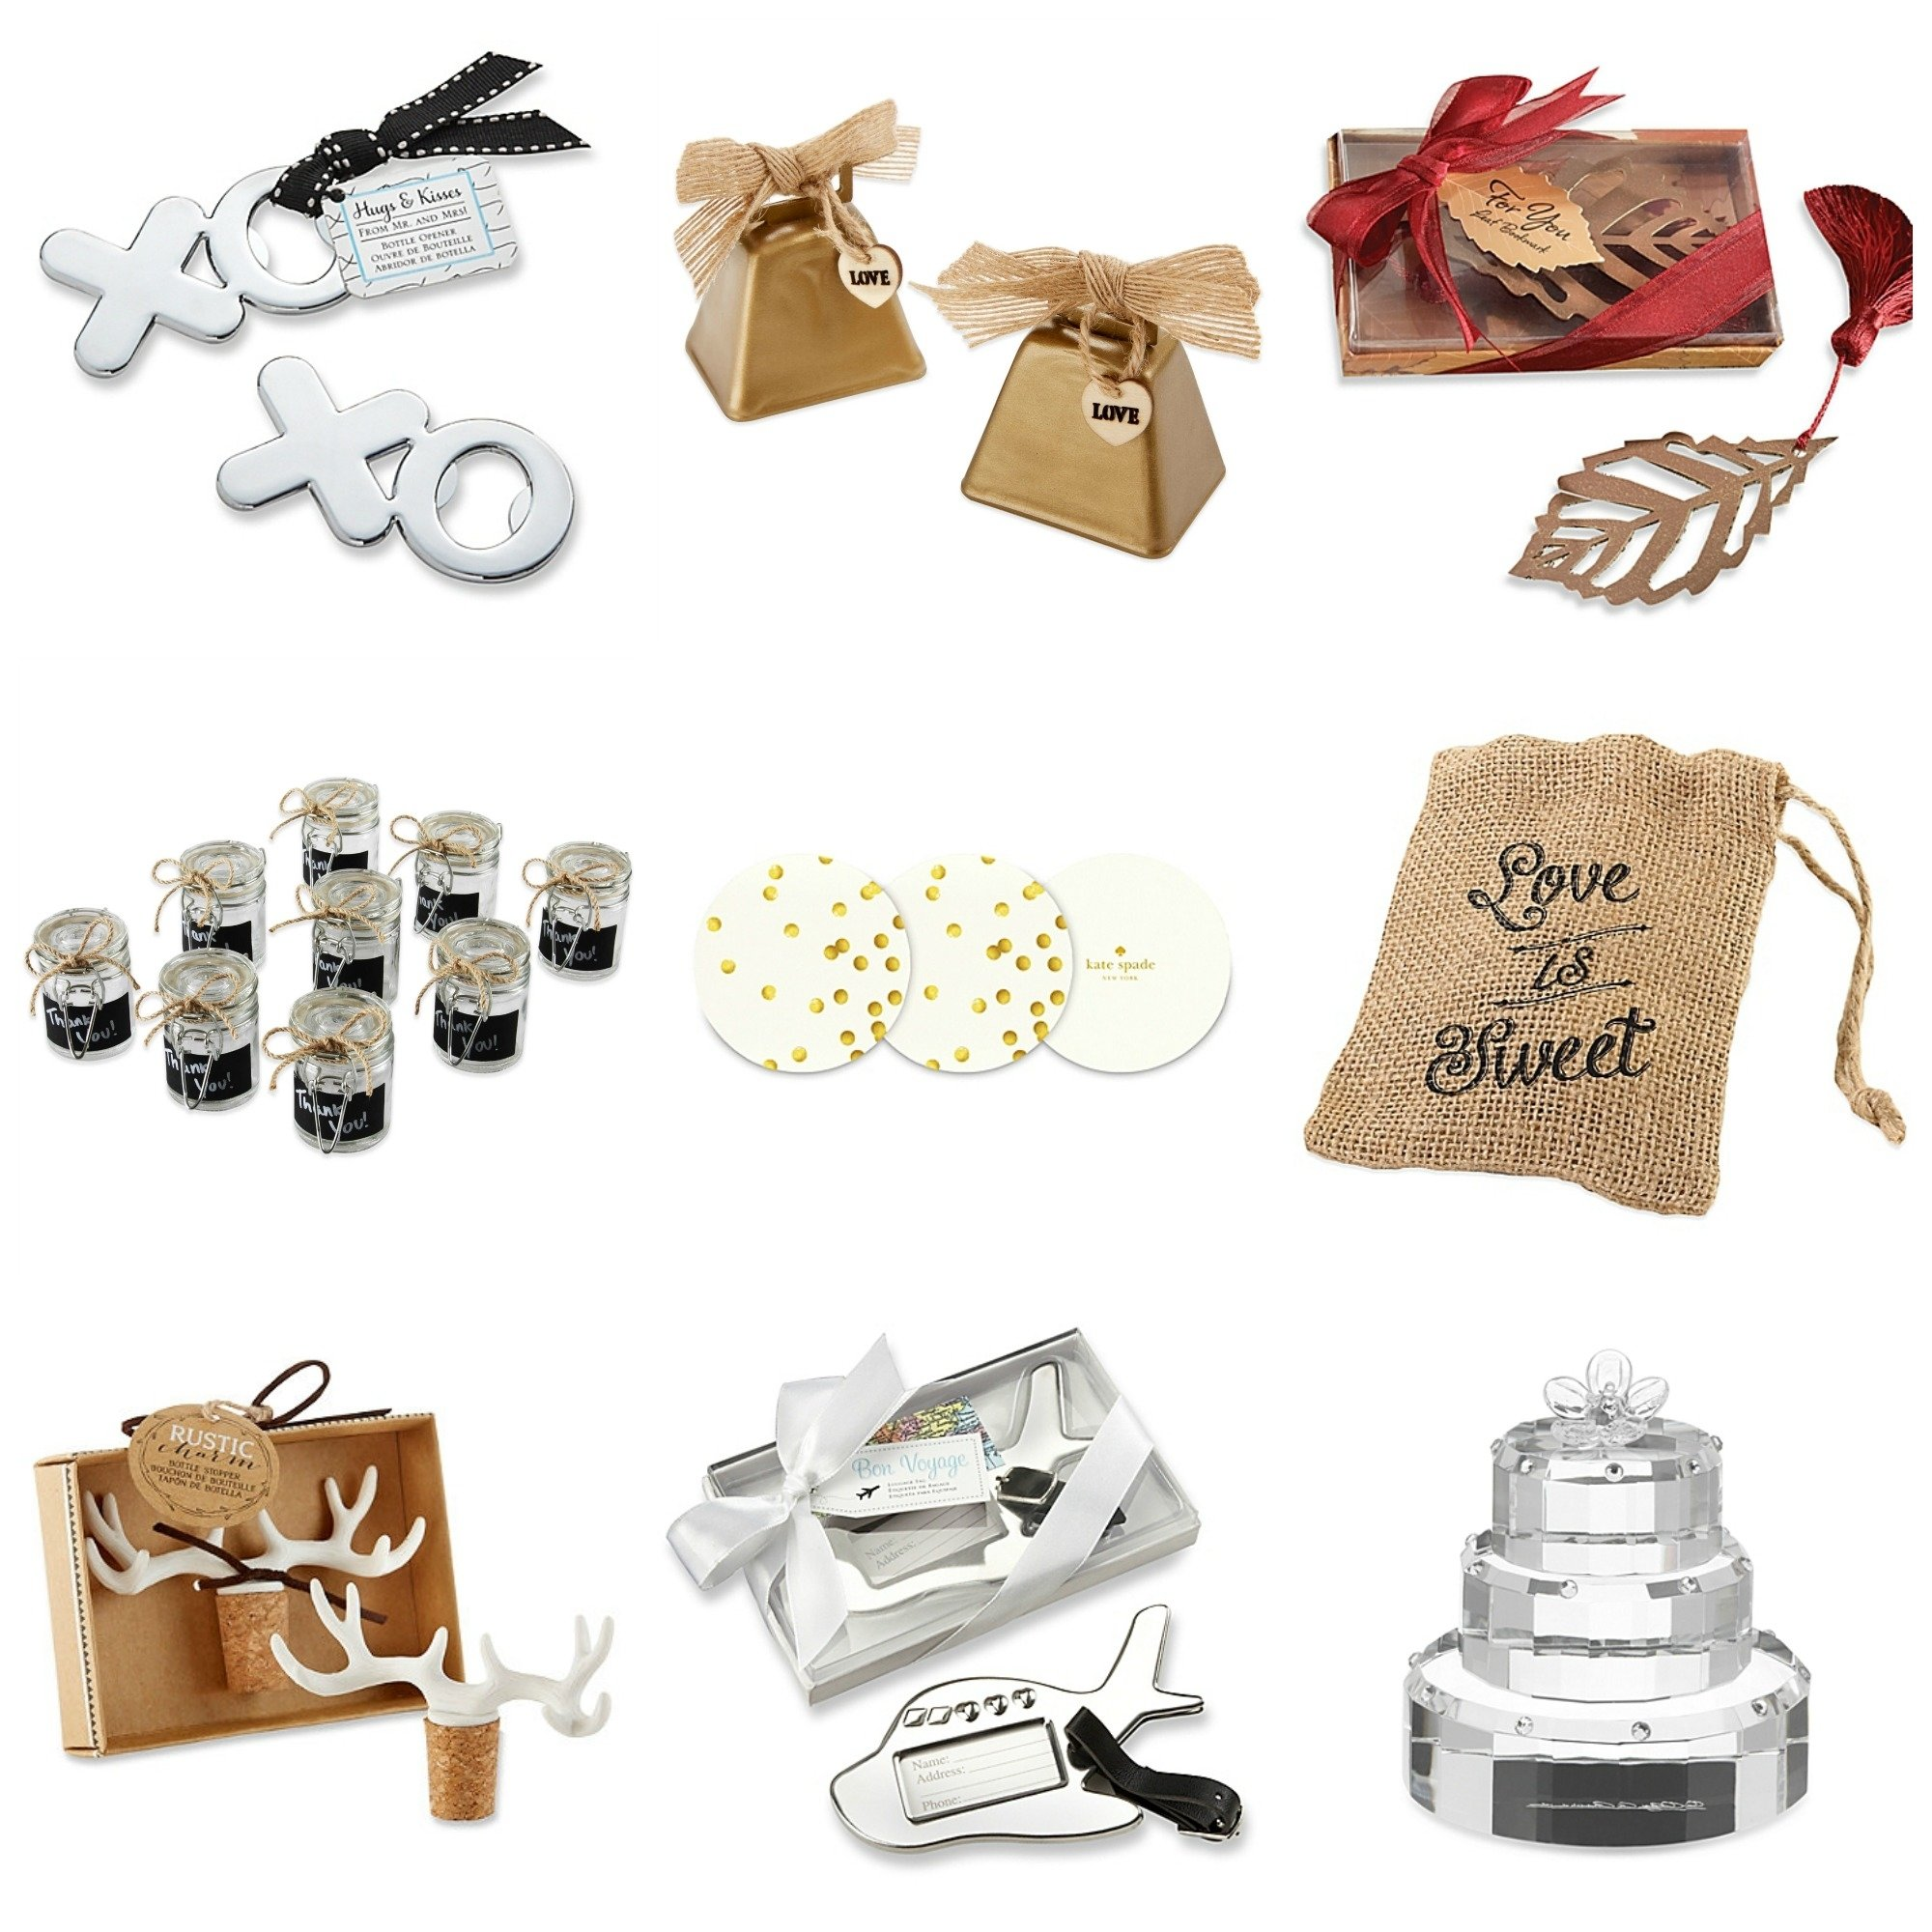 10 Amazing Bed Bath And Beyond Gift Ideas did you know we sell wedding favors above beyondabove beyond